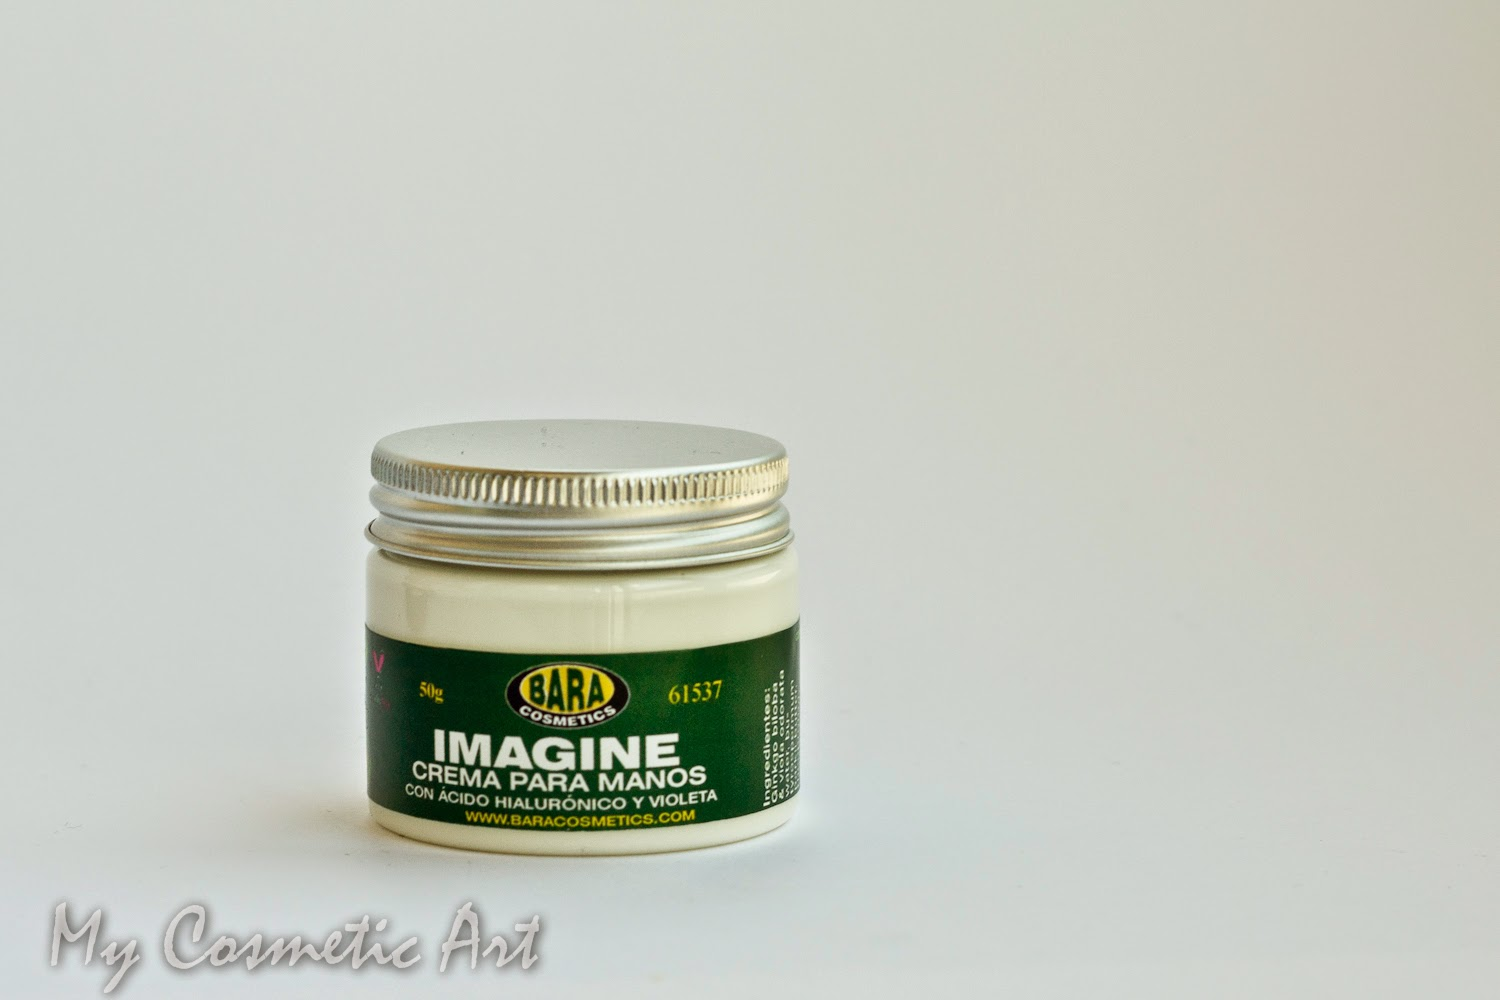 Imagine, la crema de manos de Bara Cosmetics.